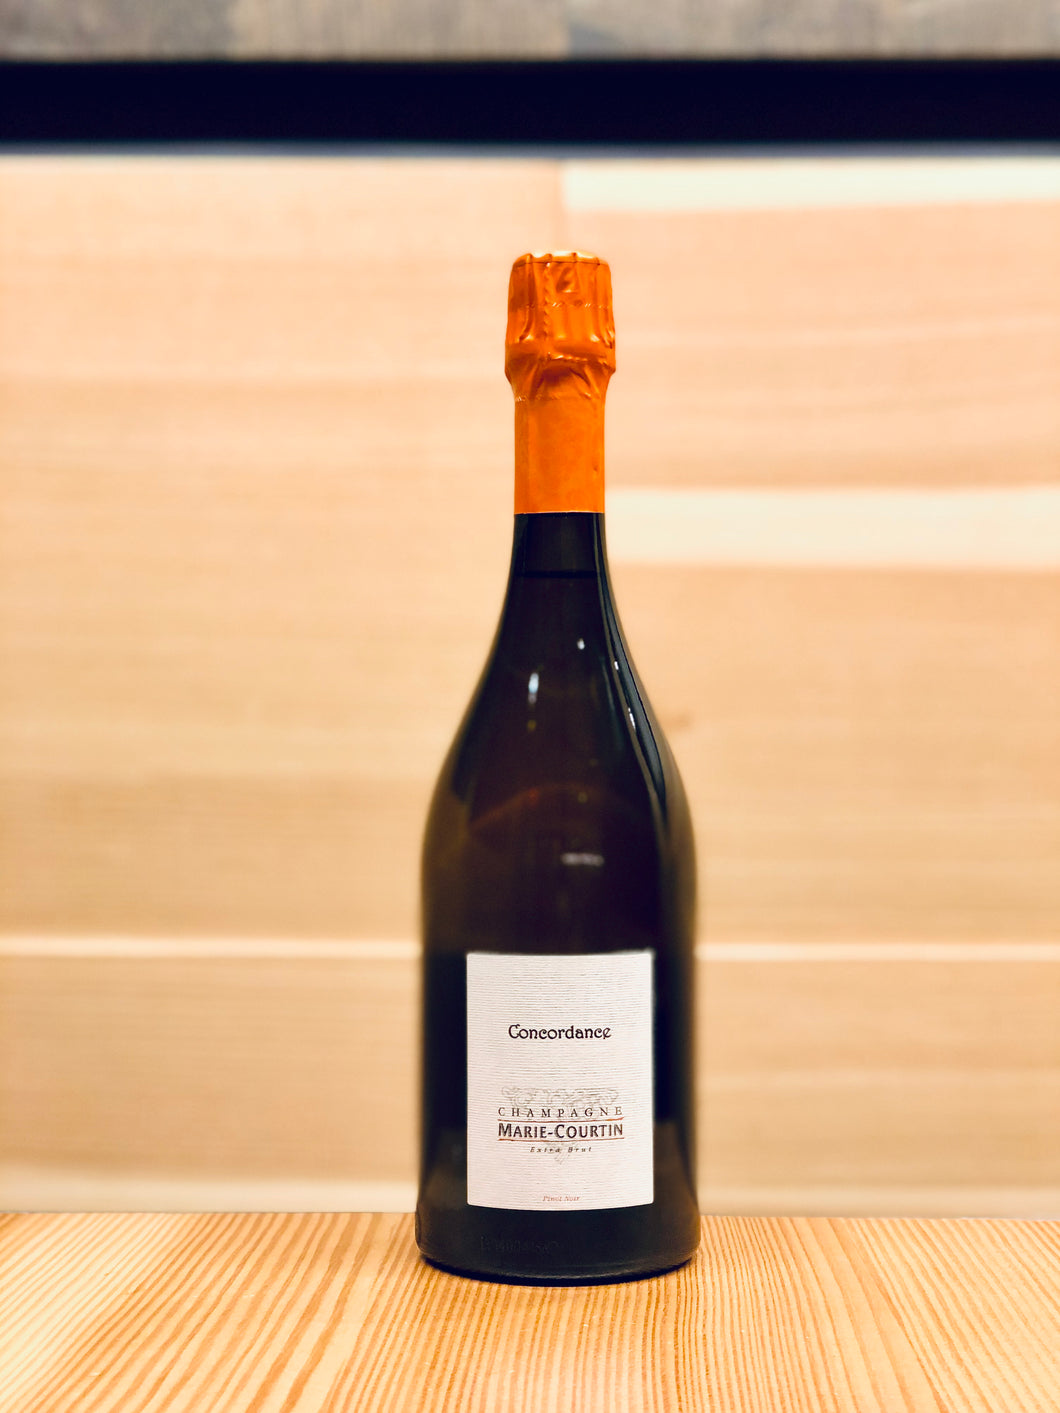 Marie Courtin 'Concordance' Champagne 2014